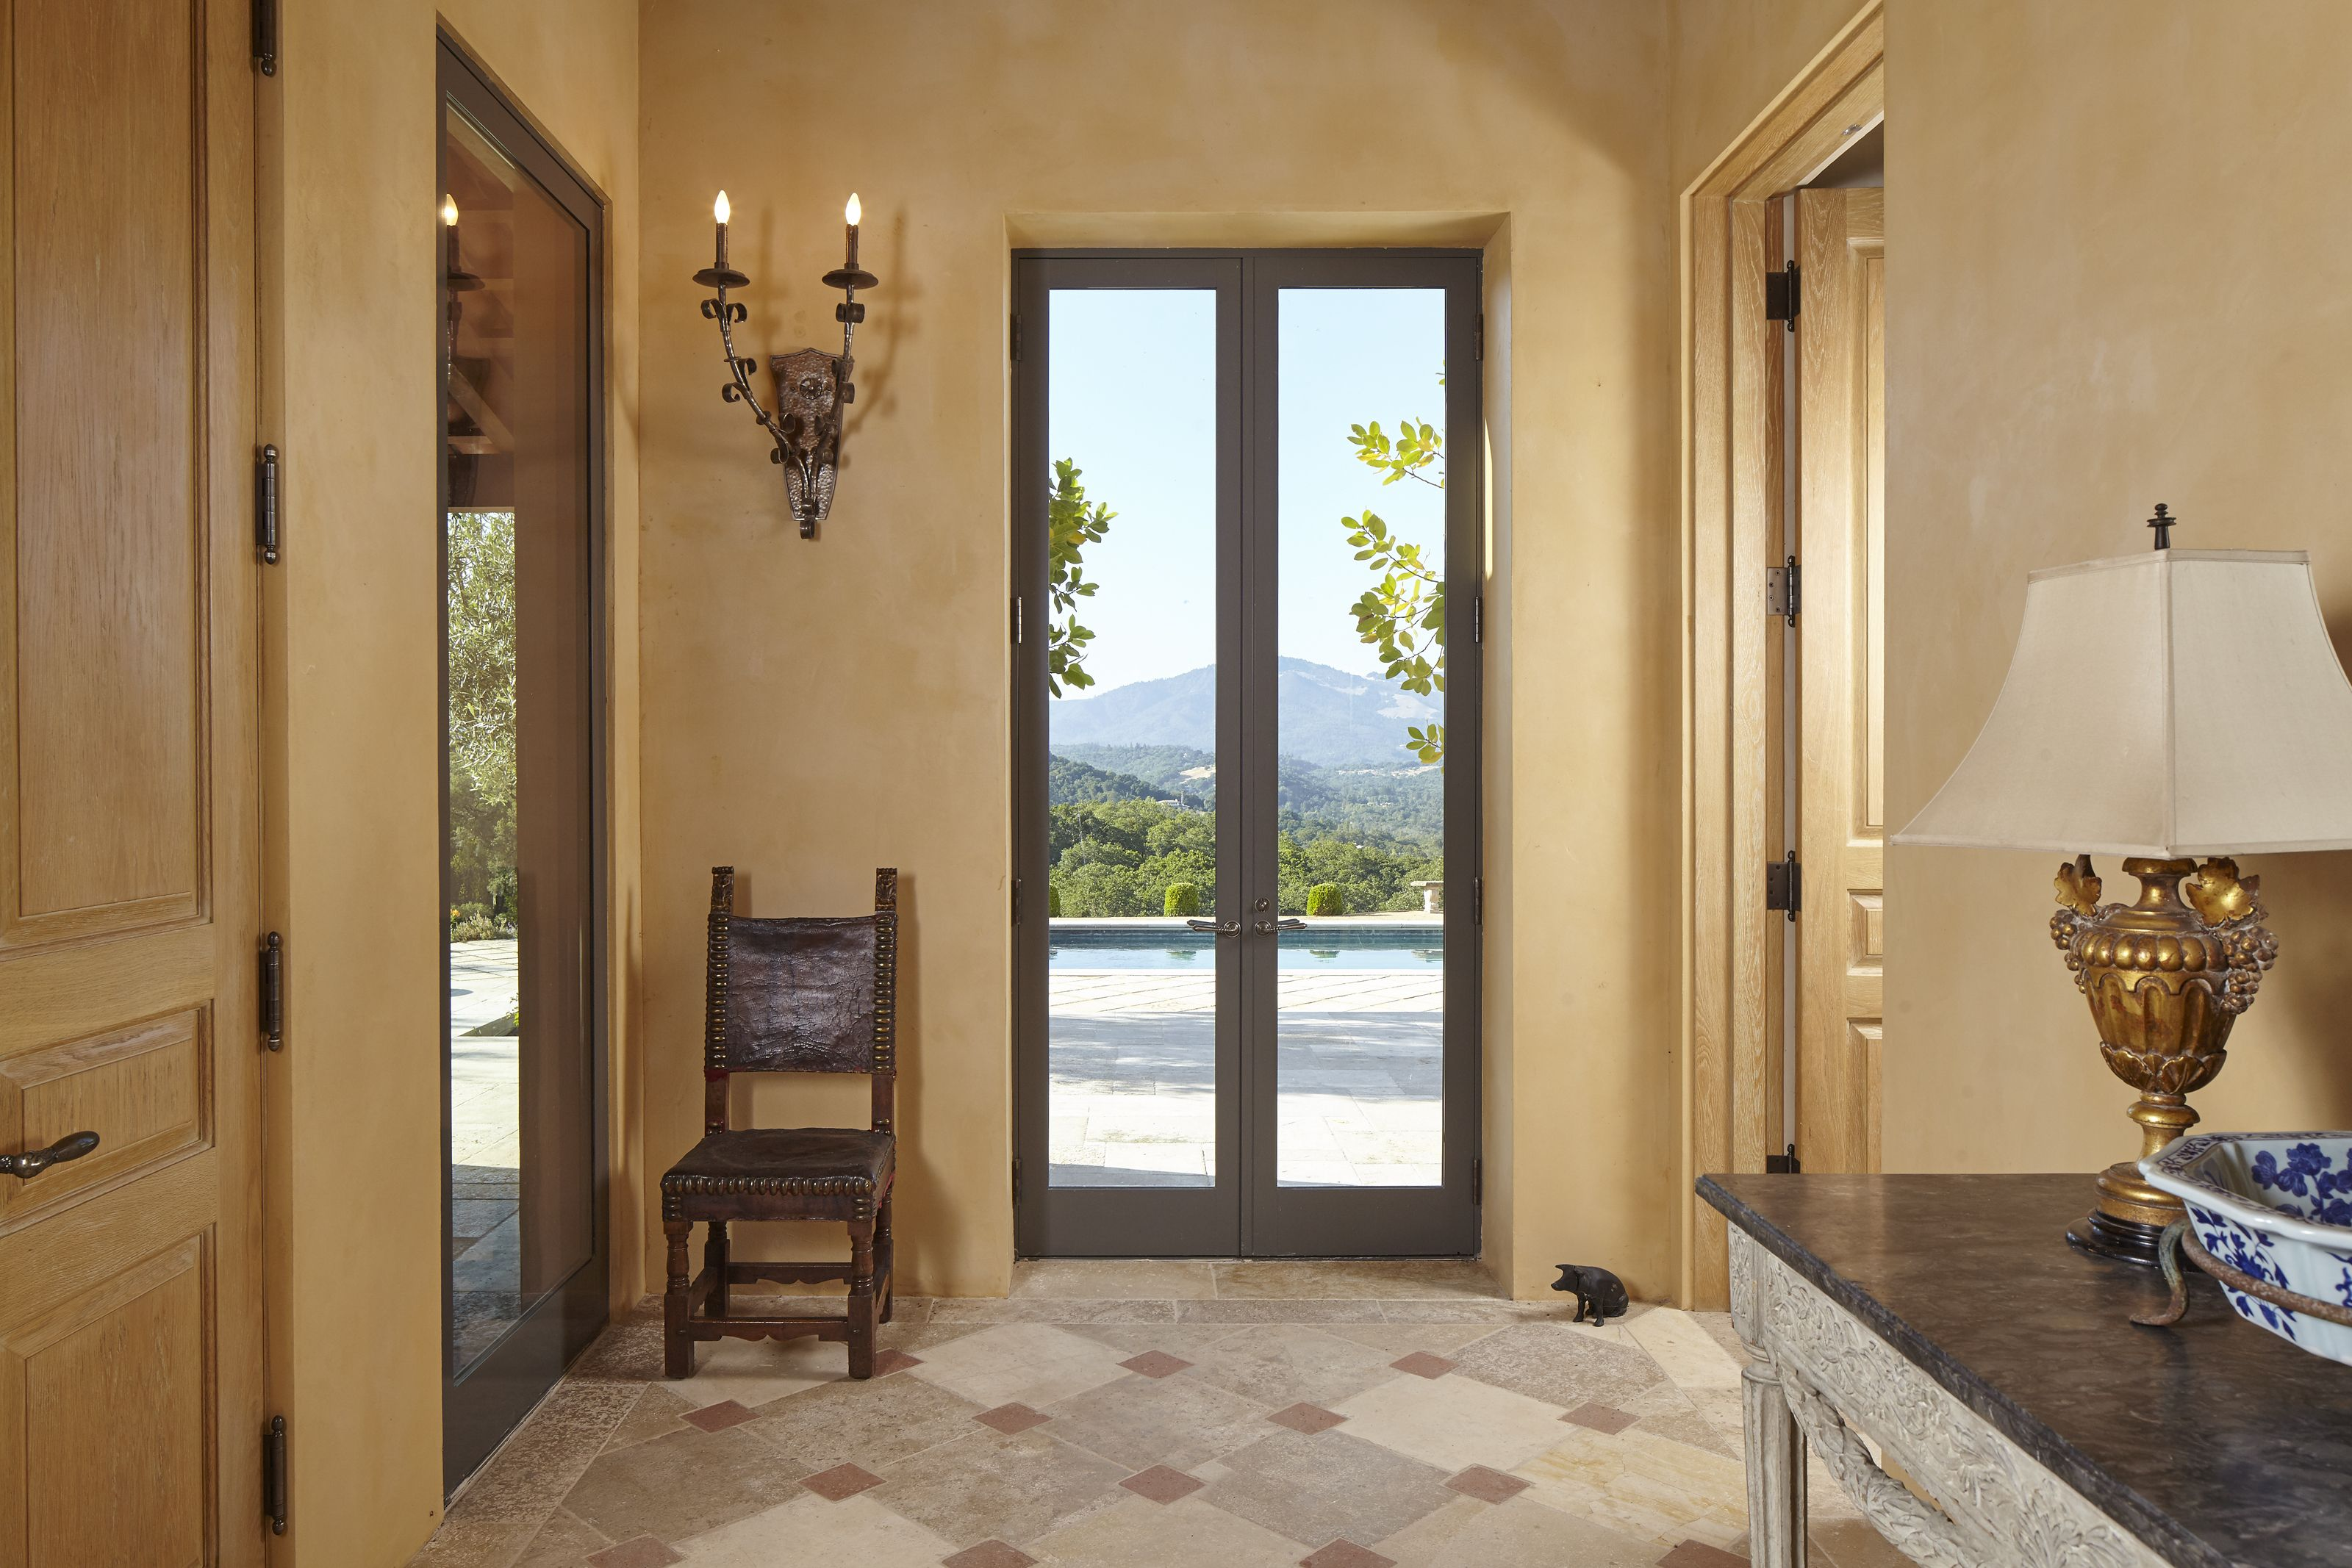 Foyer entry with views to outside